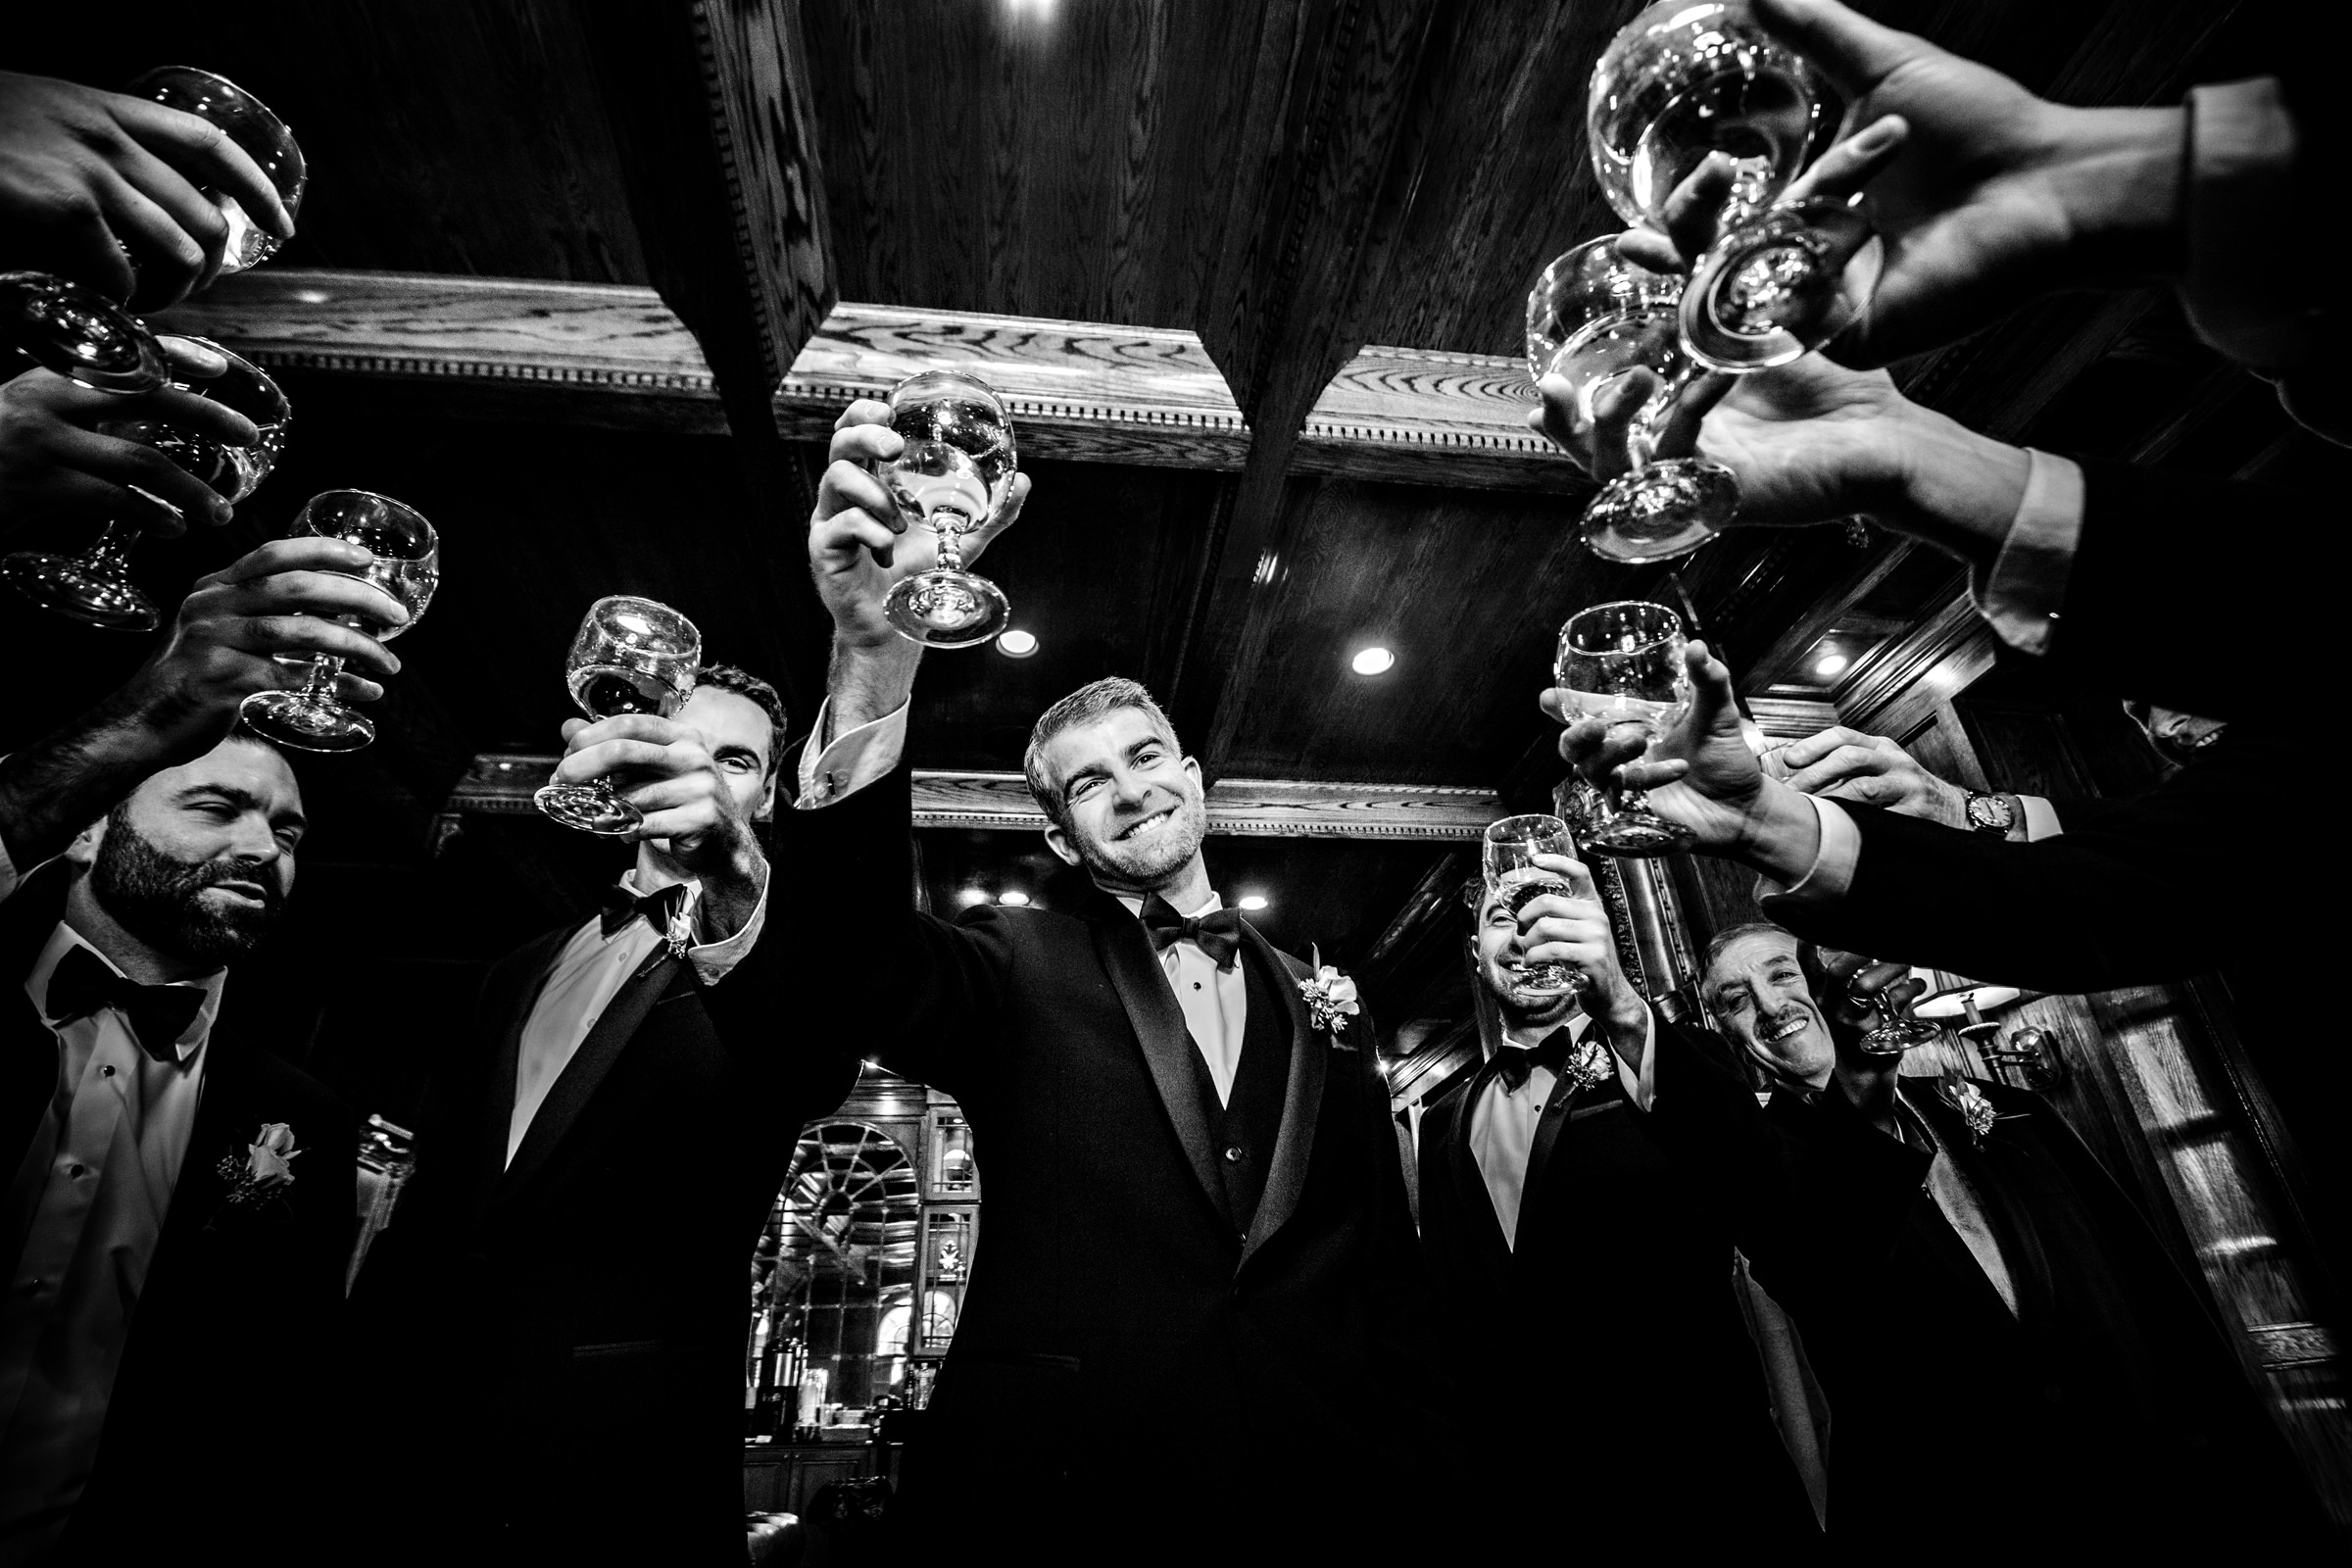 Groom and groomsmen raise a toast - black and white photo by Jeff Tisman Photography, New York